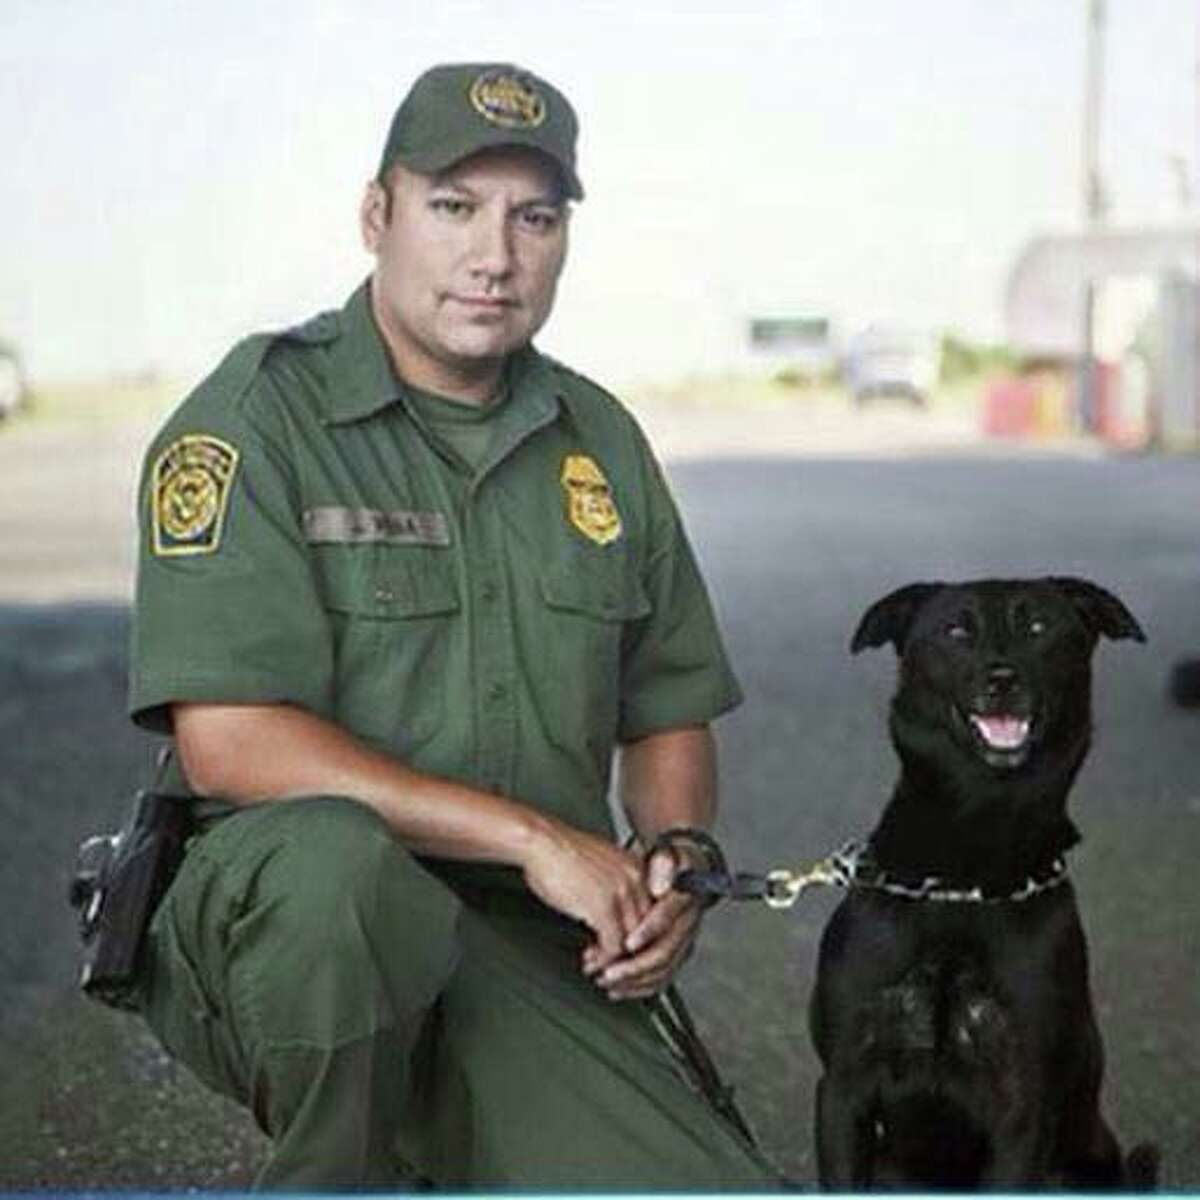 Border Patrol Javier Vega was killed on Aug. 3, 2014, while fishing with family in Santa Monica, Texas, a secluded area near Harlingen in the Rio Grande Valley. When two men attempted to rob the family, Vega pulled out his weapon and was shot in the chest His death was initially ruled to have occurred while he was off duty but after nearly two years of efforts by family, friends, U.S. Sen. John Cornyn and others, Vega's death was reclassified on Sept. 20 by Border Patrol as a line-of-duty death.